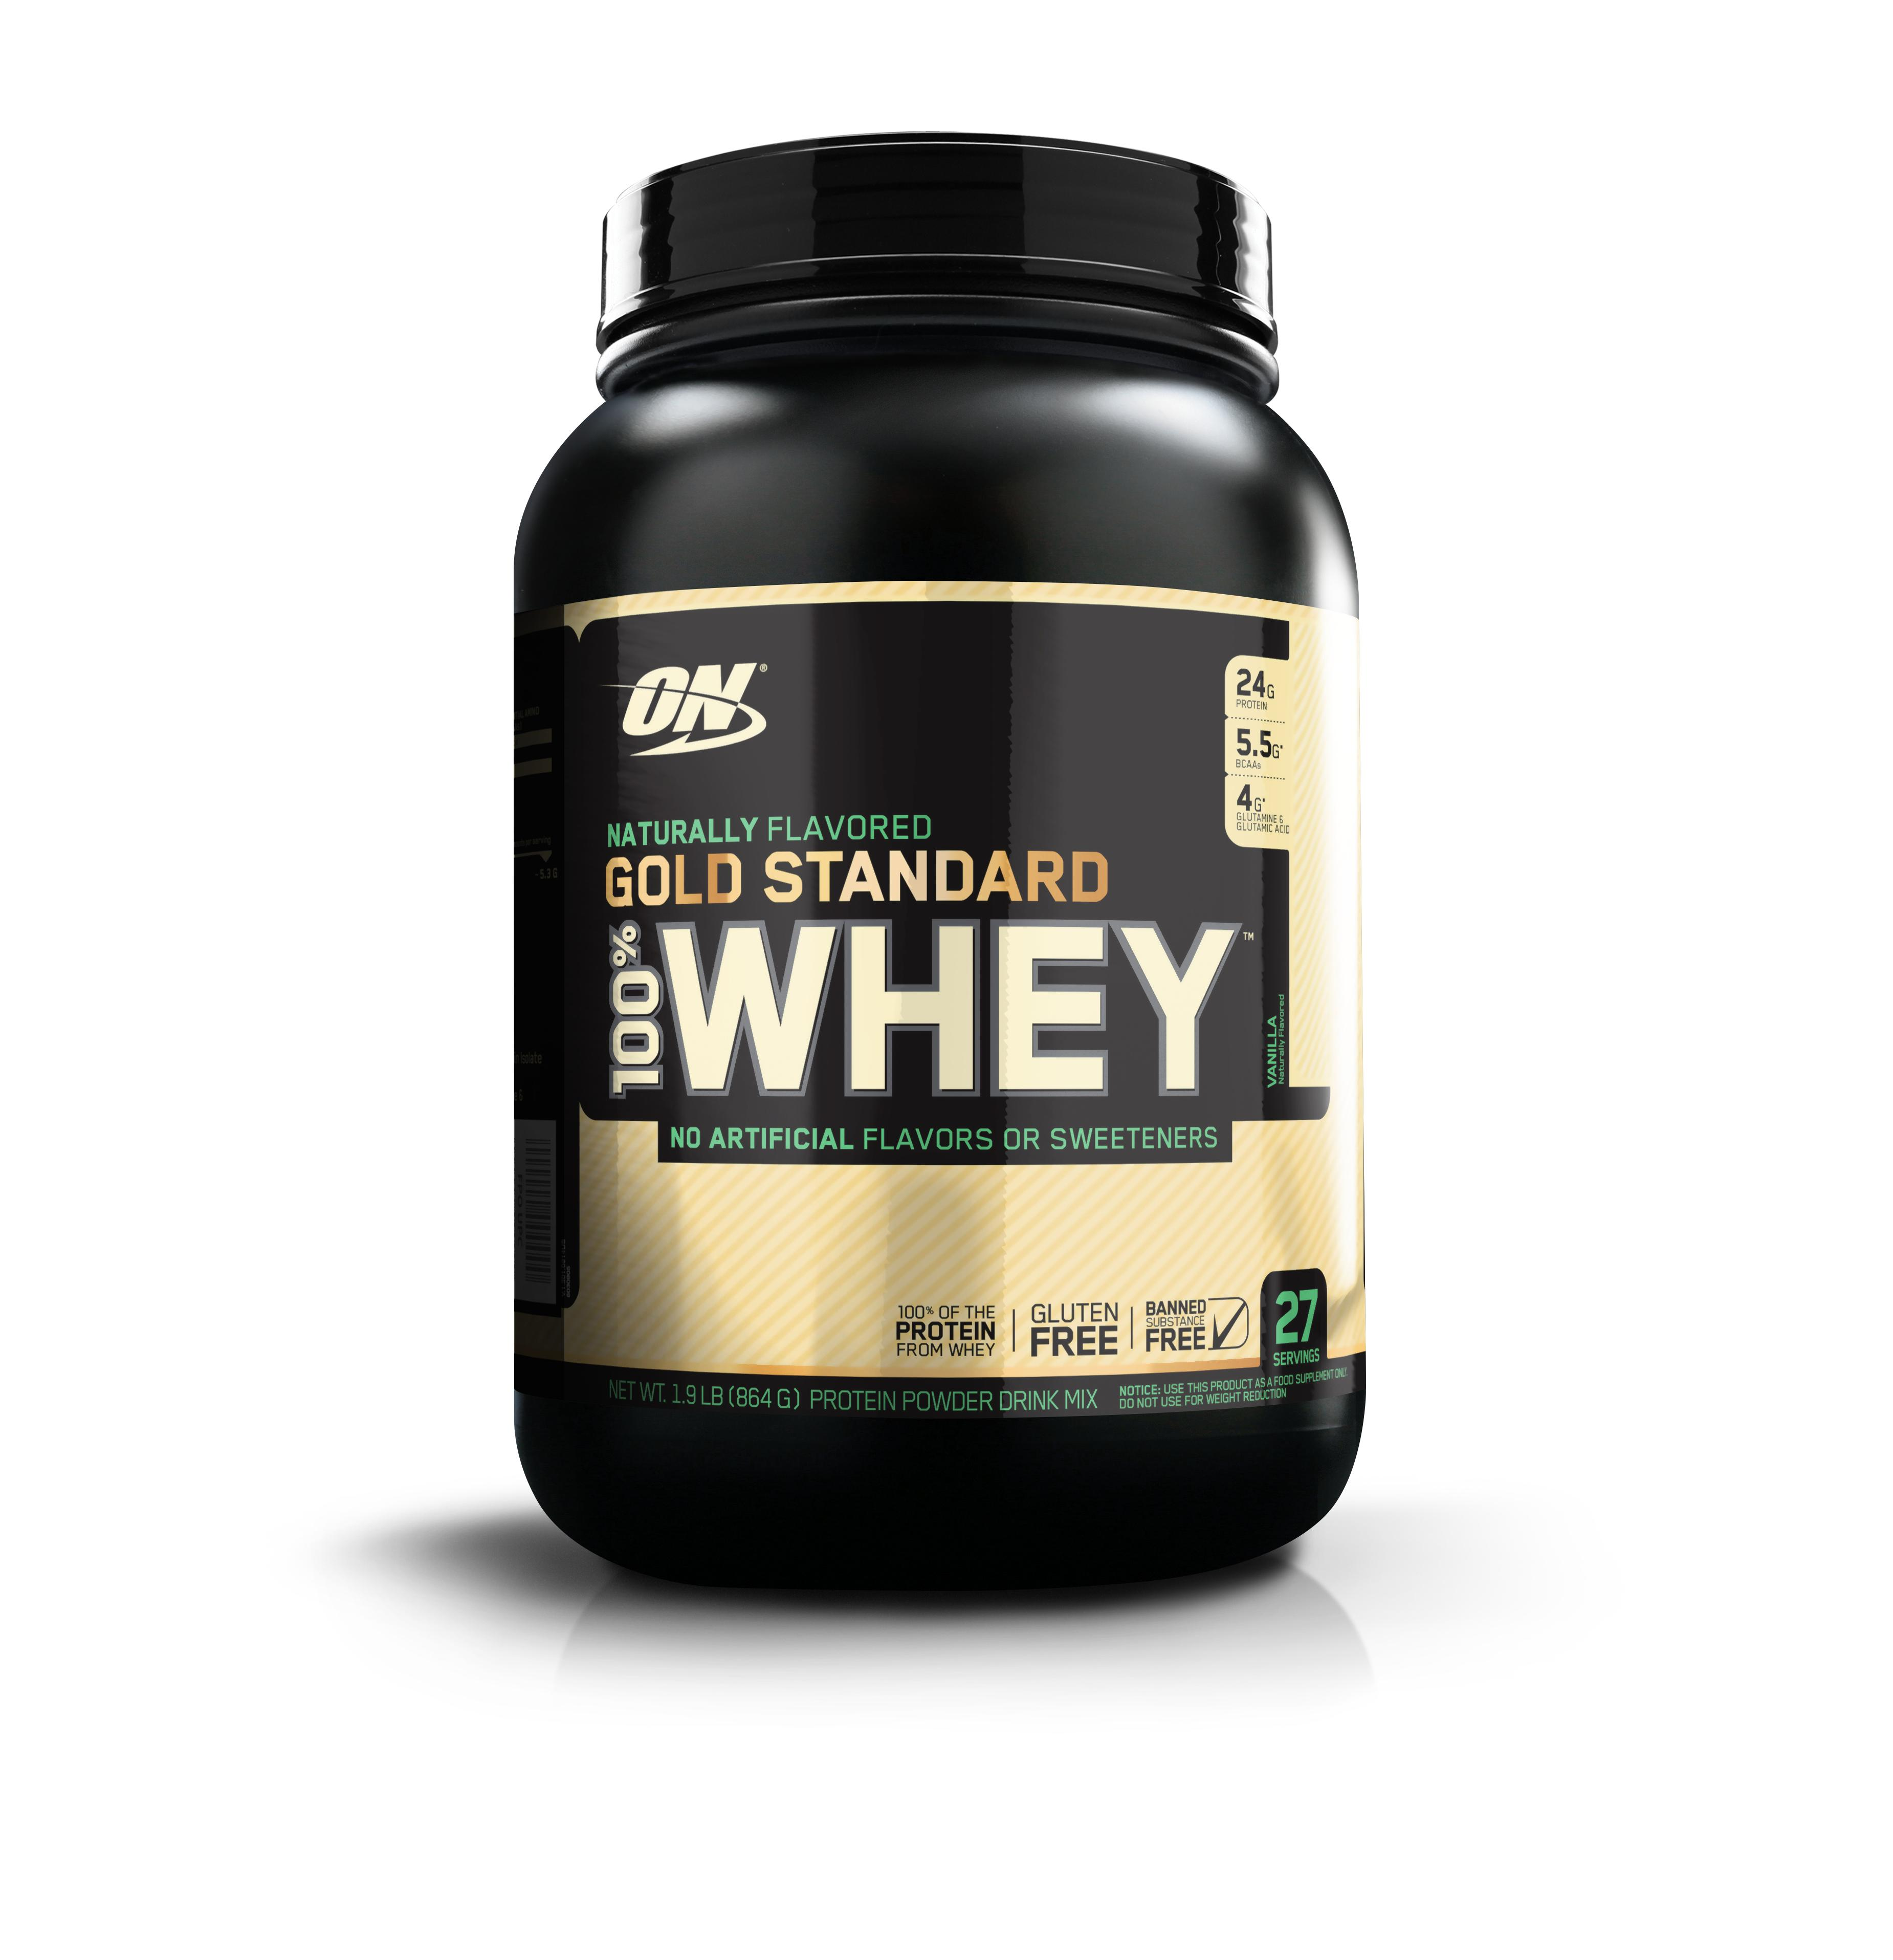 Optimum Nutrition Gold Standard 100% Whey Protein Powder, 24g Protein, Variety of Sizes & Flavors